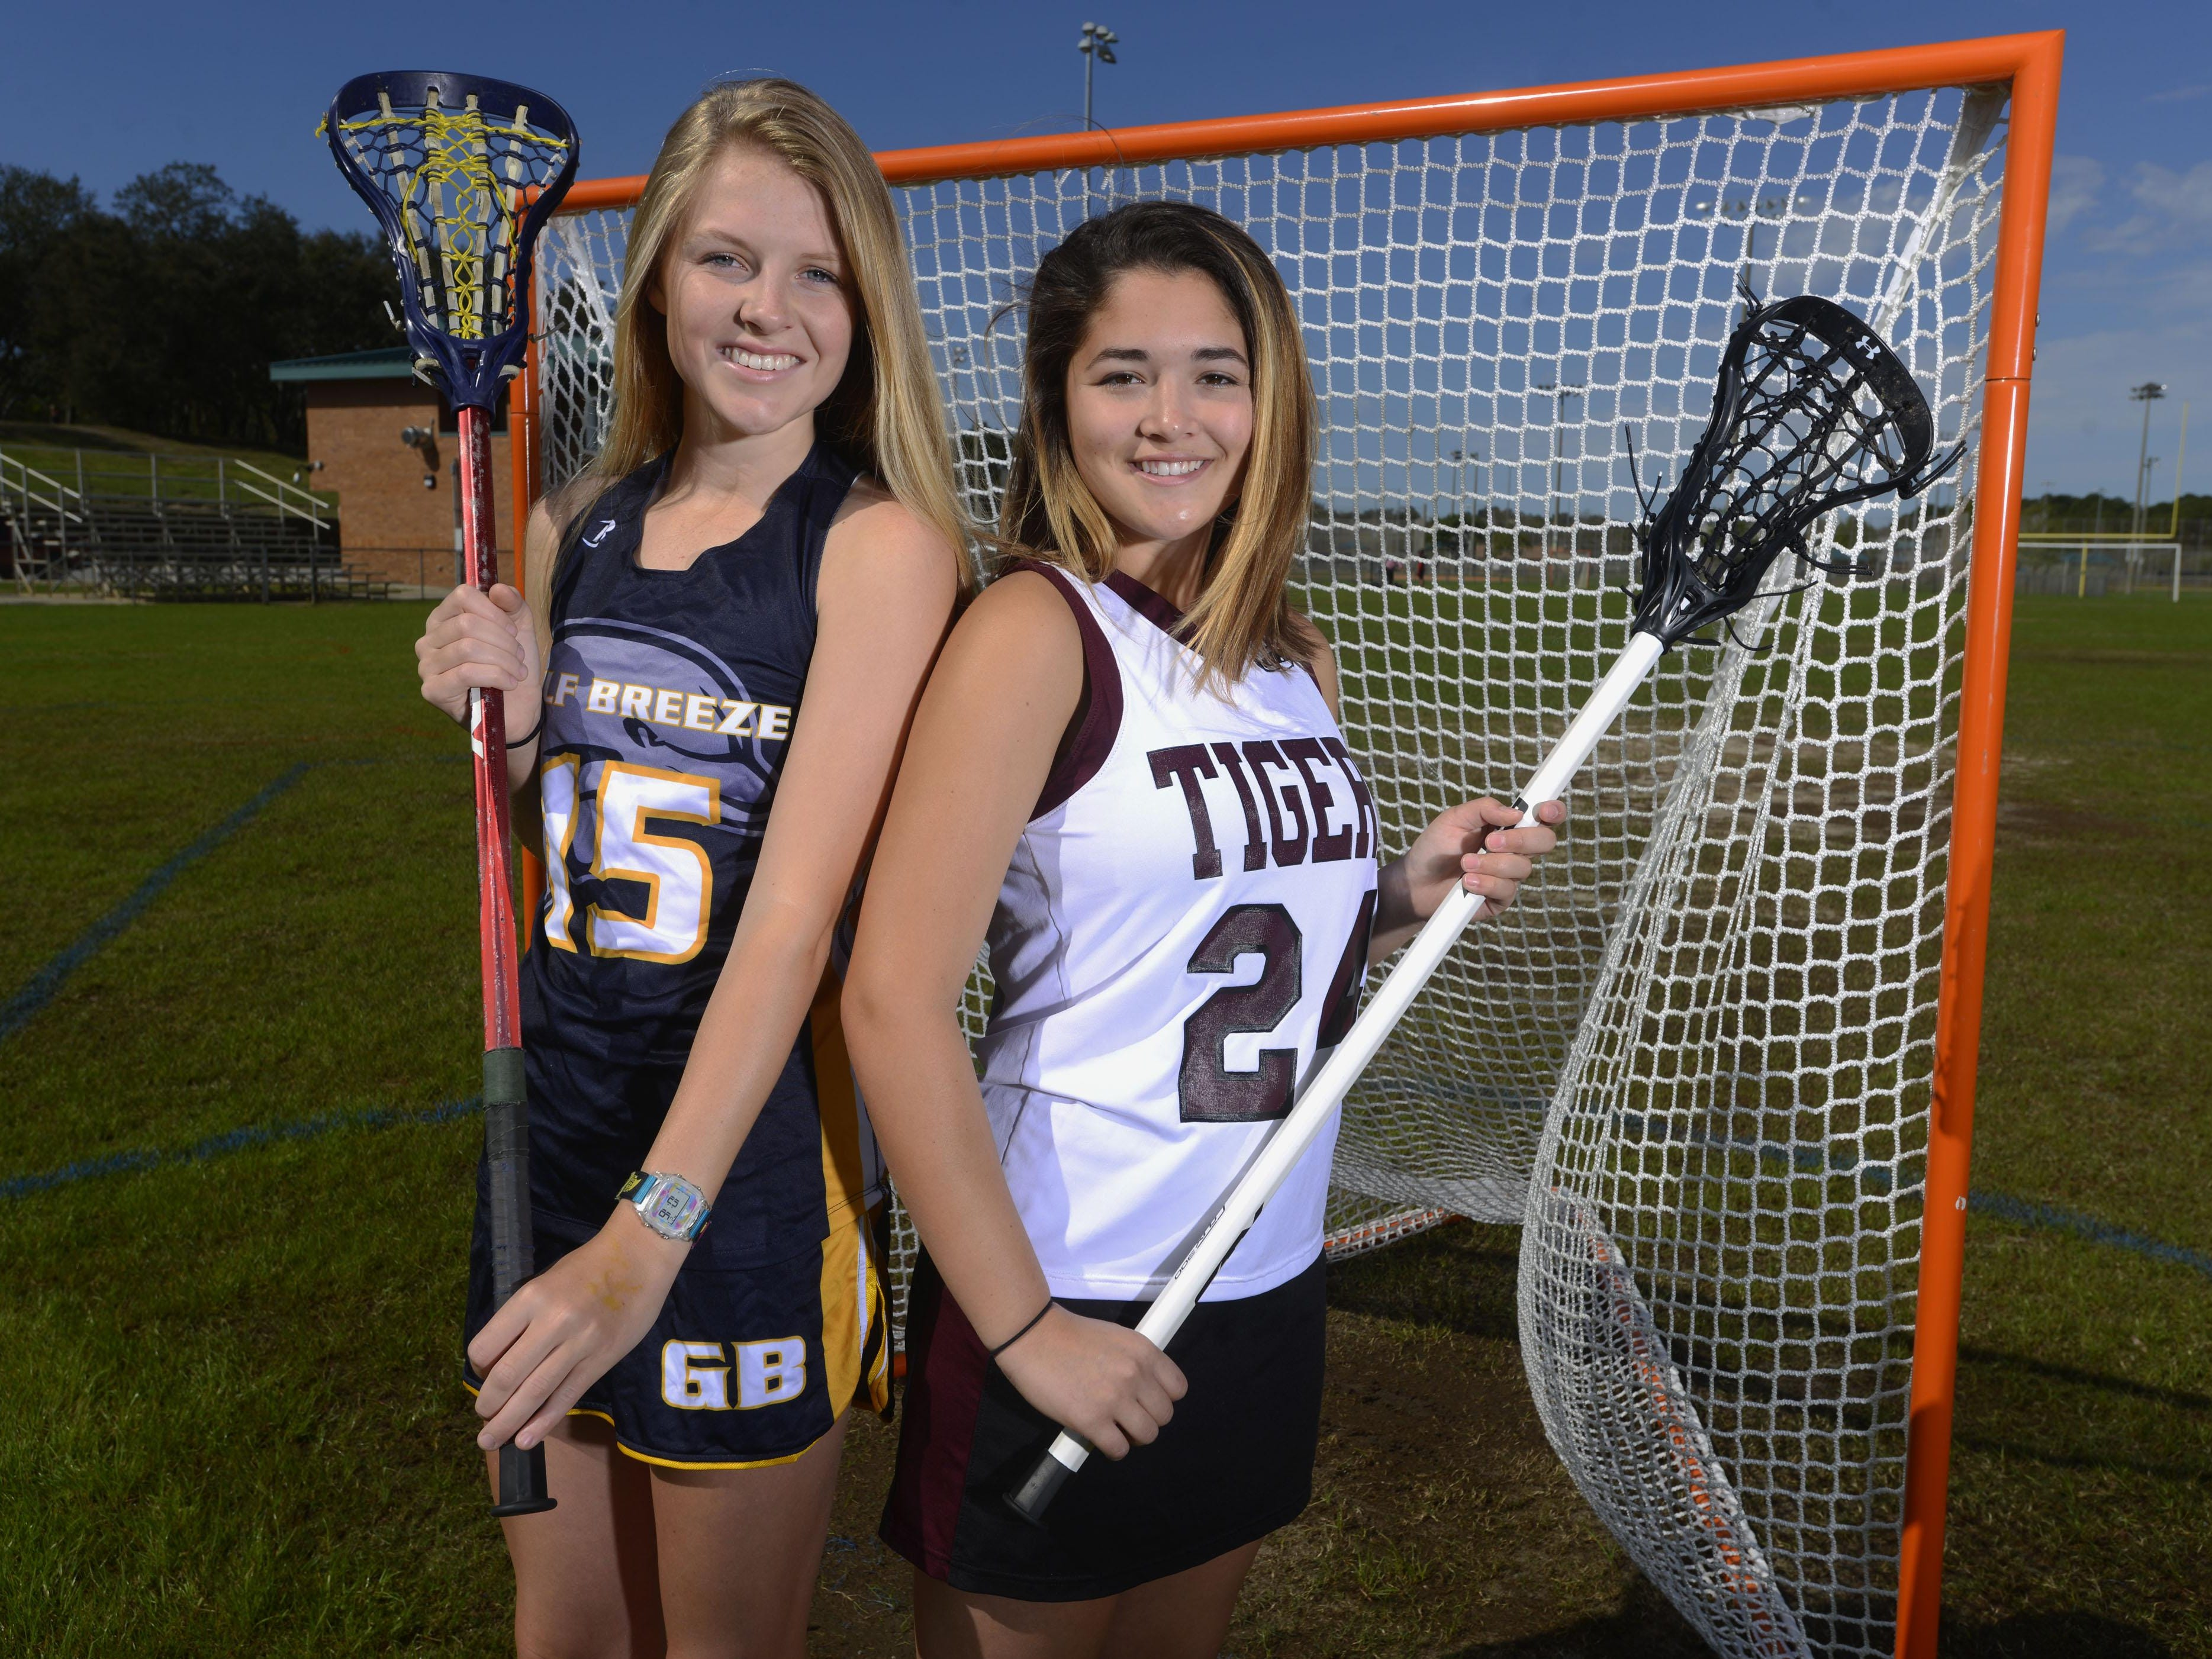 Prep lacrosse stars and best friends Frances Williams, a senior at Gulf Breeze High and Victoria Warren, a junior at Pensacola High, on the field at Shoreline Park where both girls learned the sport as middle school kids.